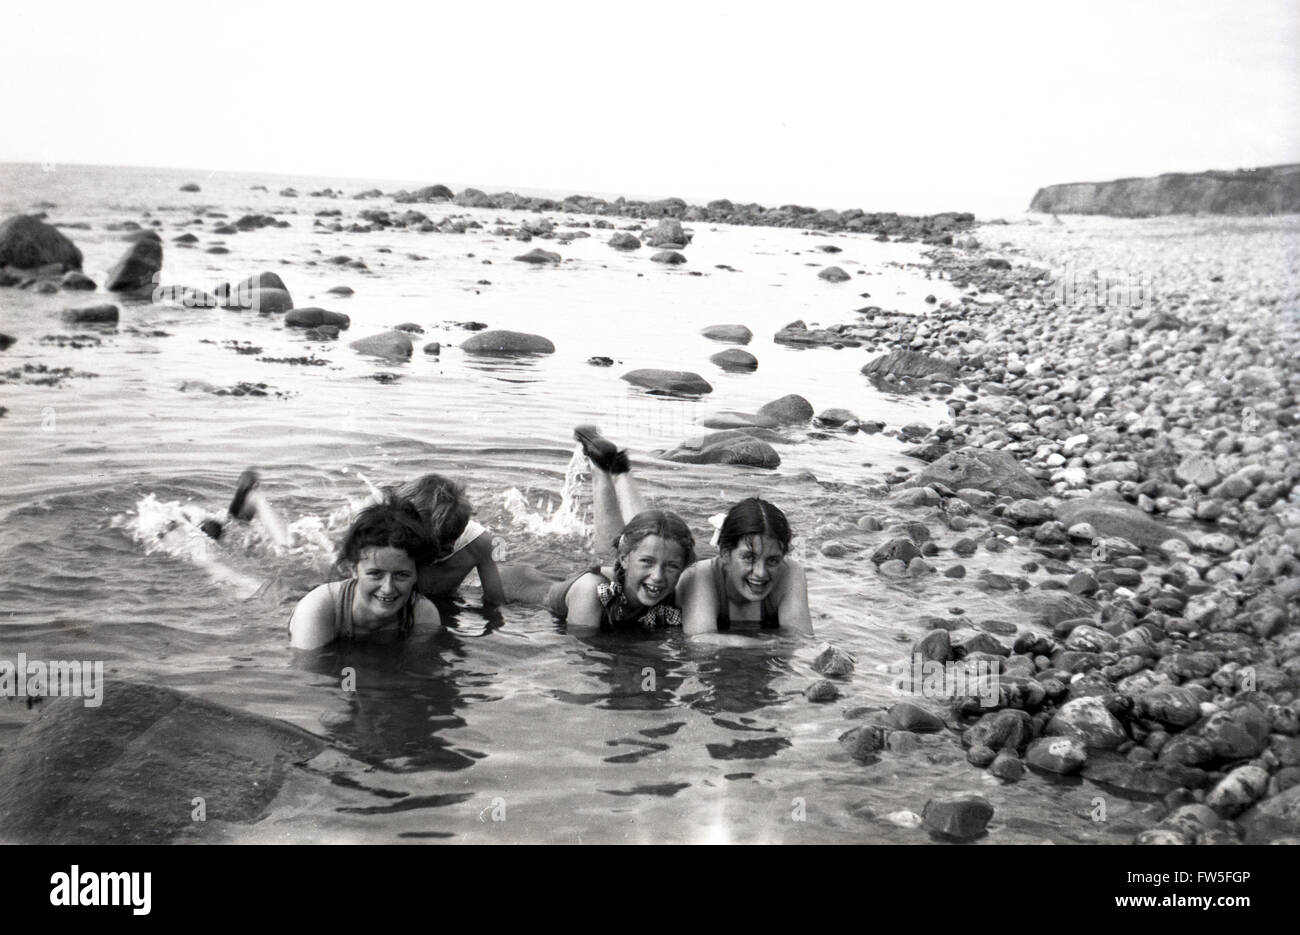 1930s historical, young girls lying in rock pools by beach. - Stock Image